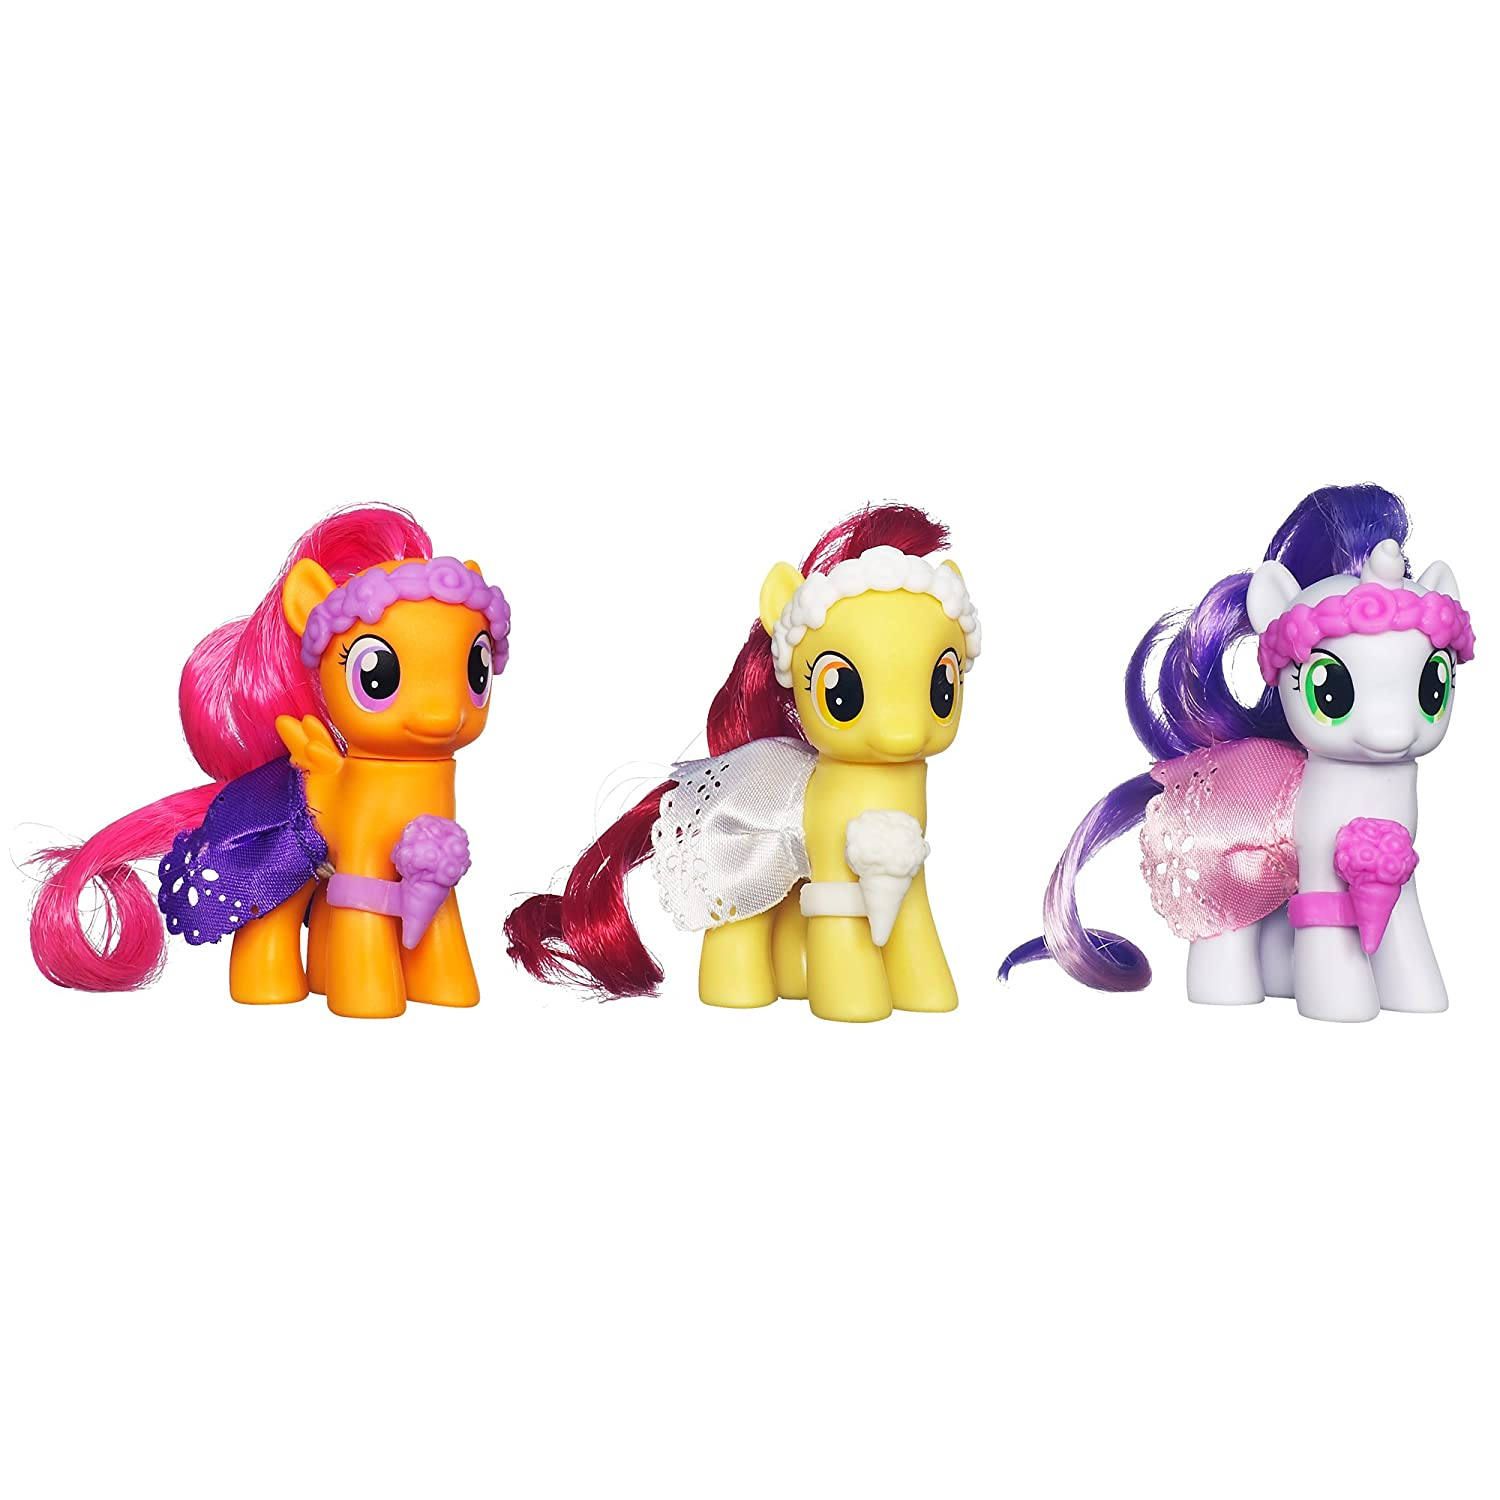 My Little Pony Toys : My little pony toys daughters love to play with